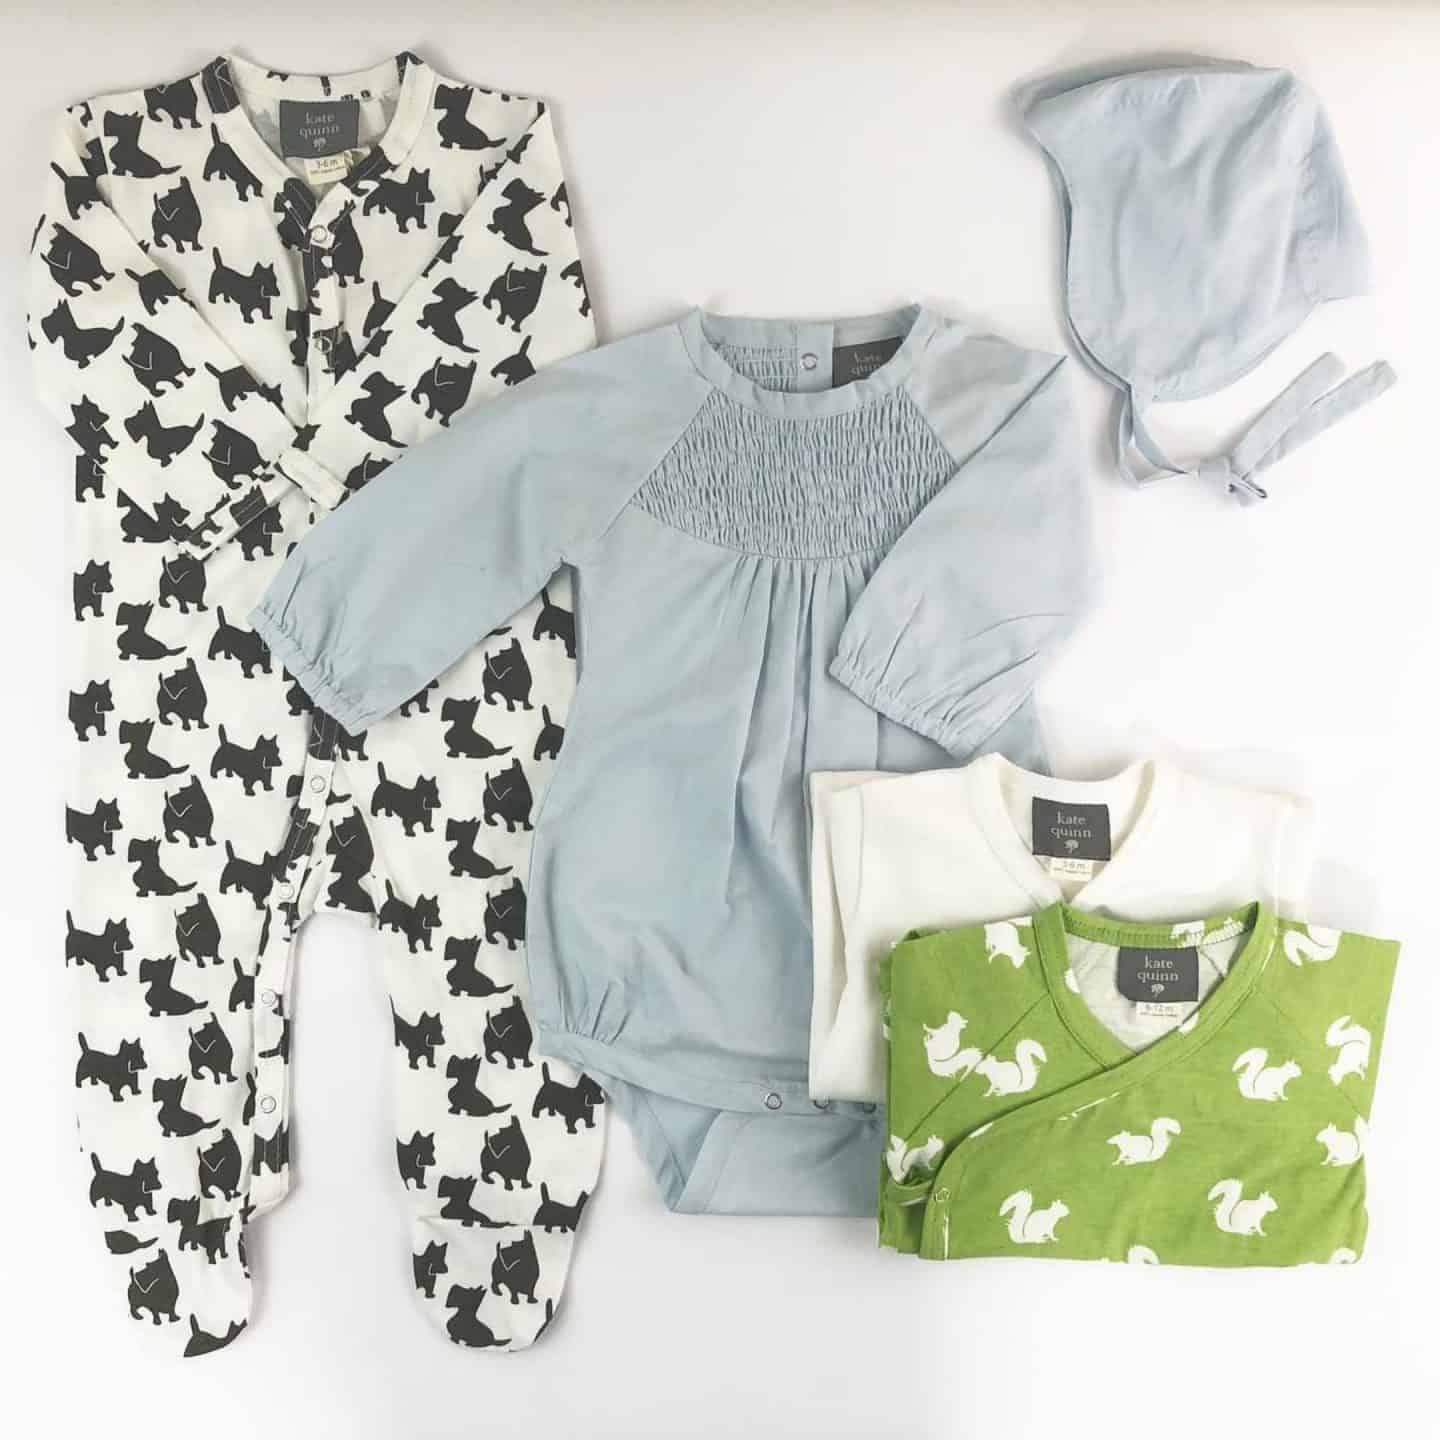 b54c4fd5b 15+ of the Best Organic Clothing Brands for Babies - Eluxe Magazine